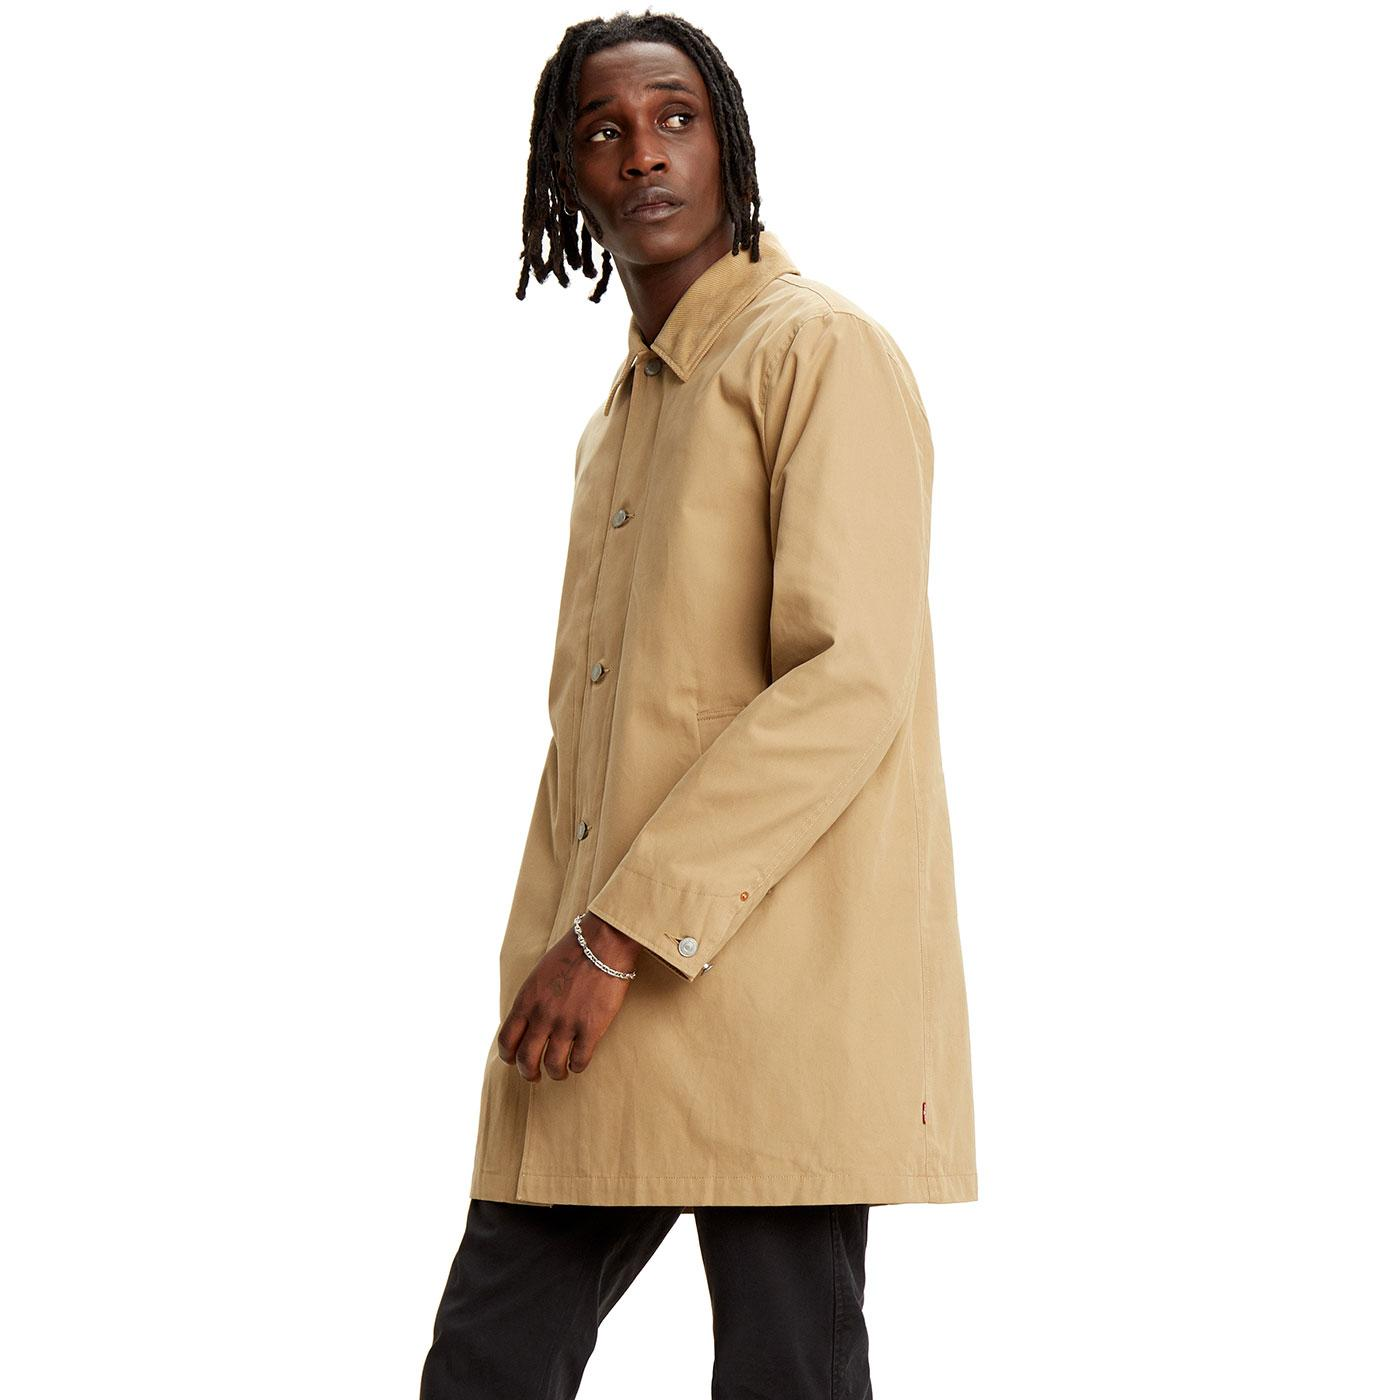 LEVI'S Men's Mod Long Utility Coat (Harvest Gold)